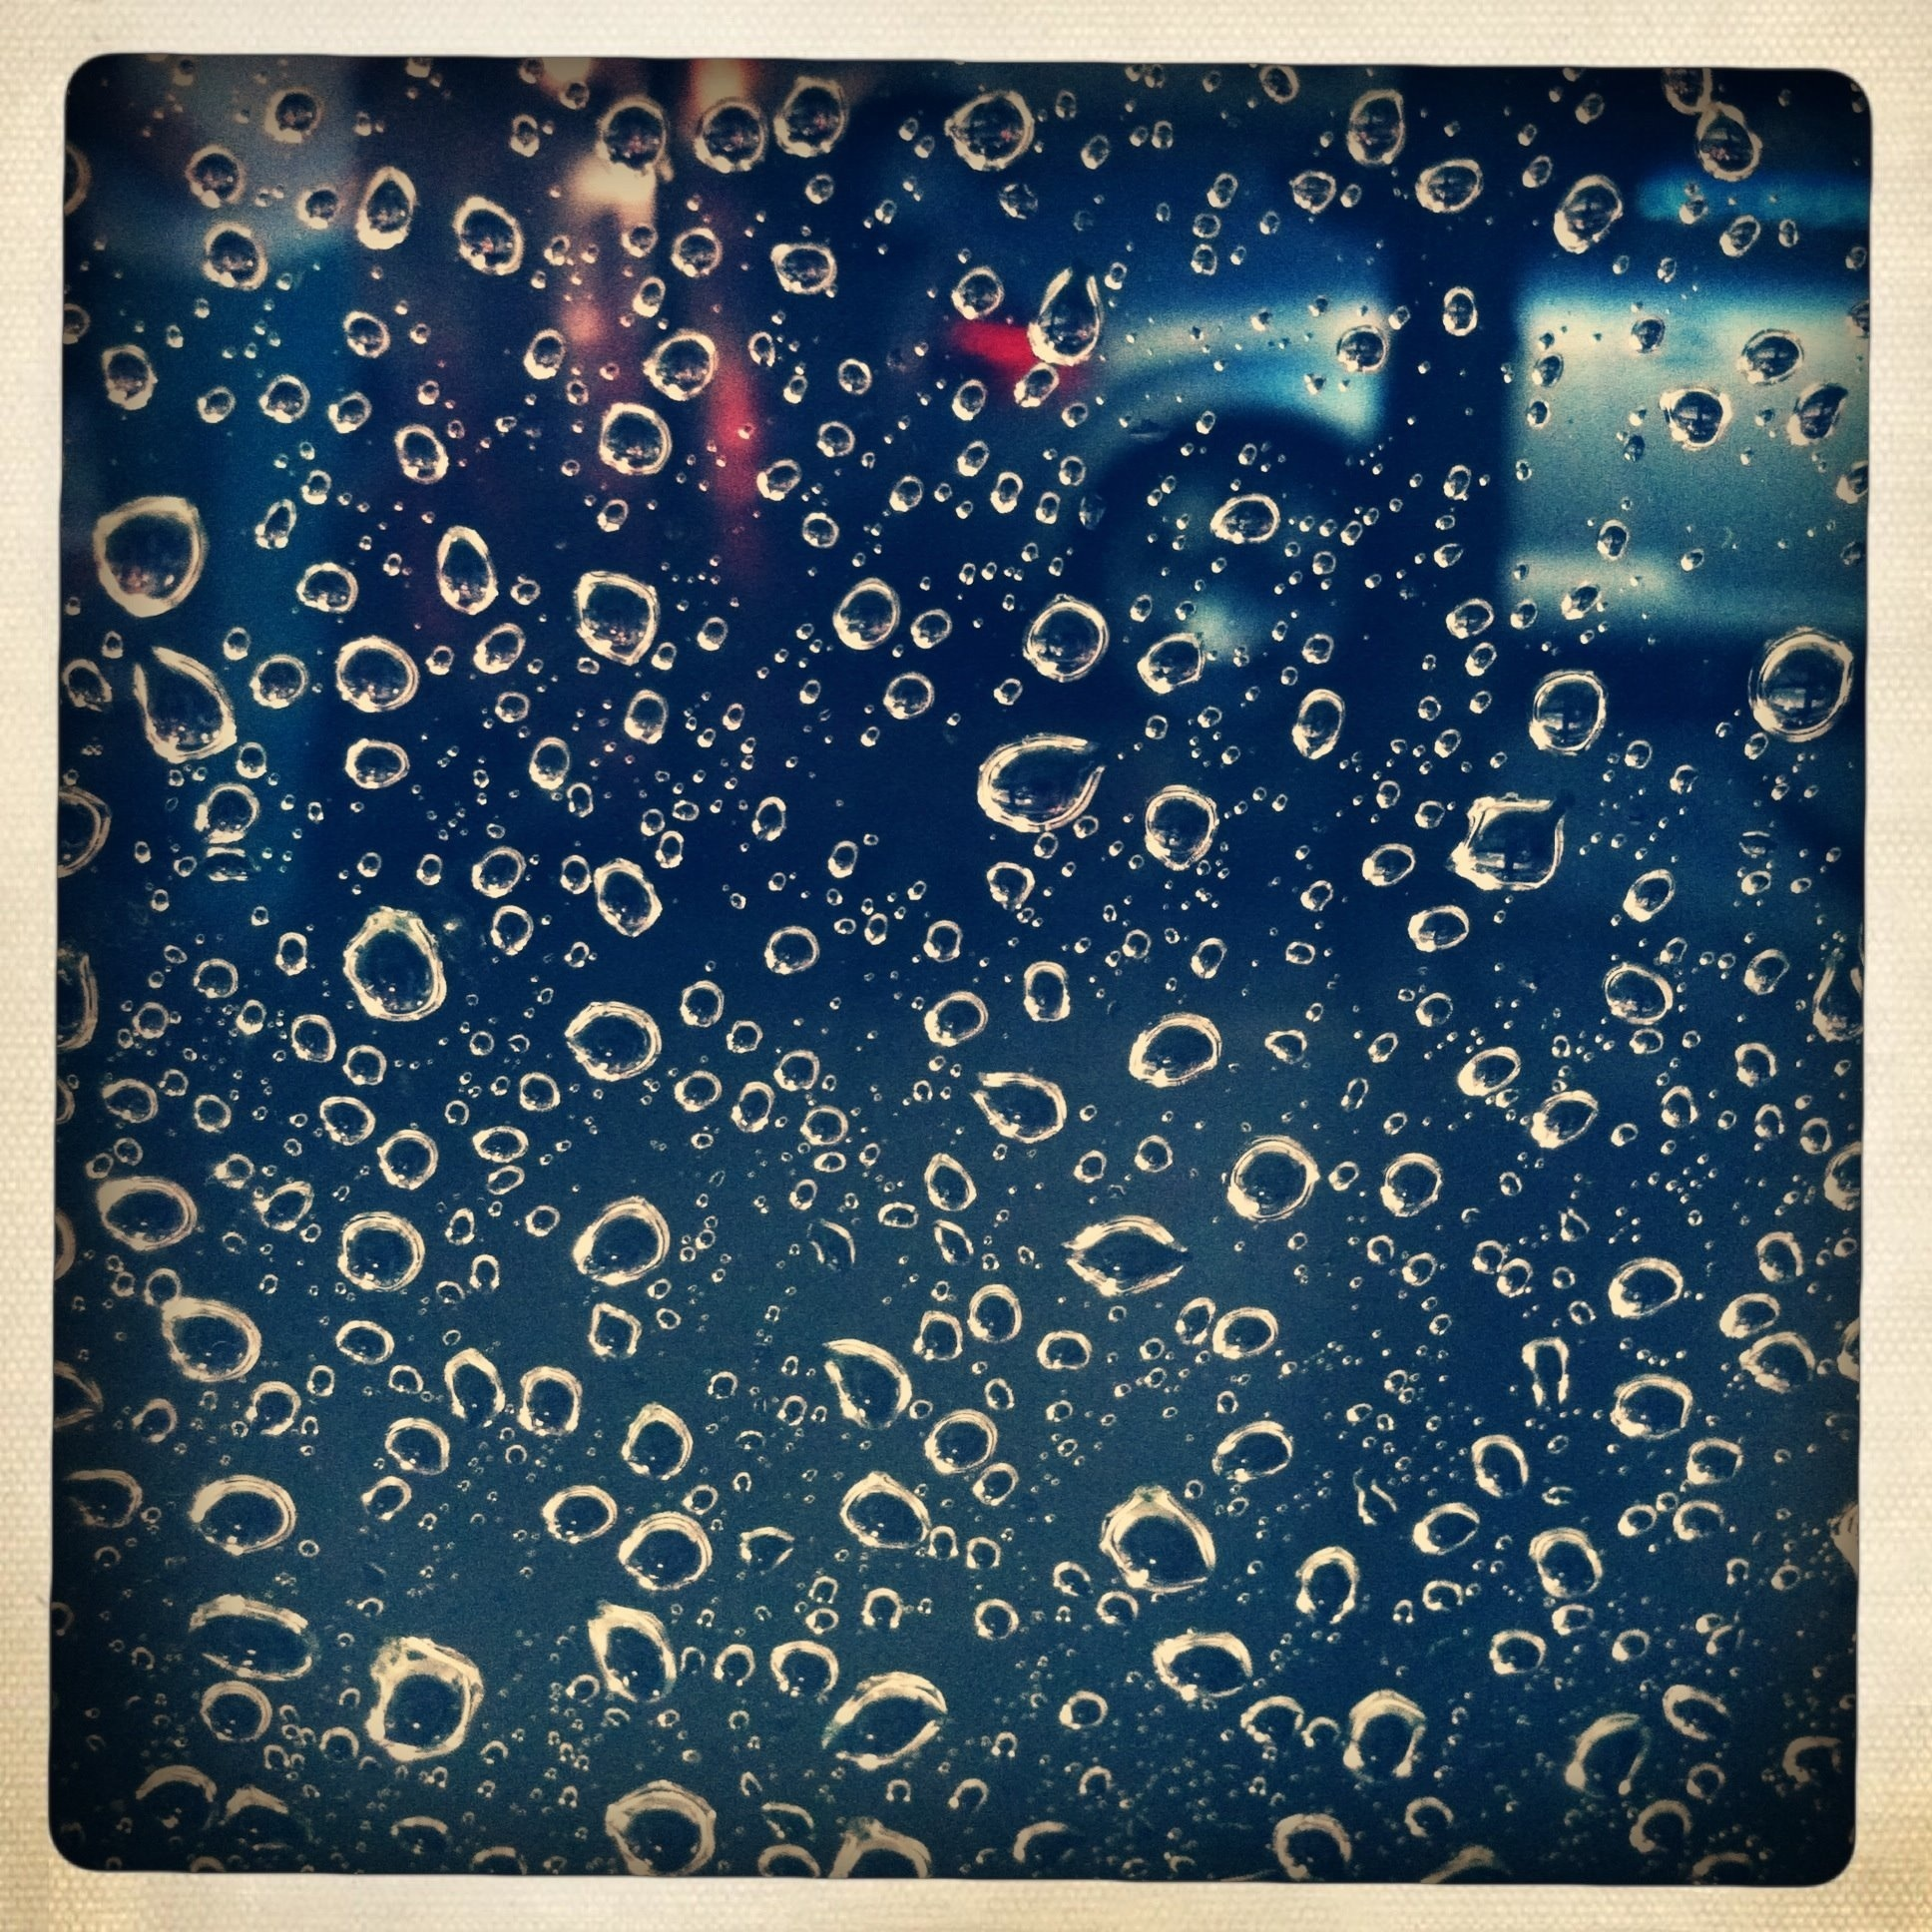 _Raindrops__Photographer - Carla Ercole